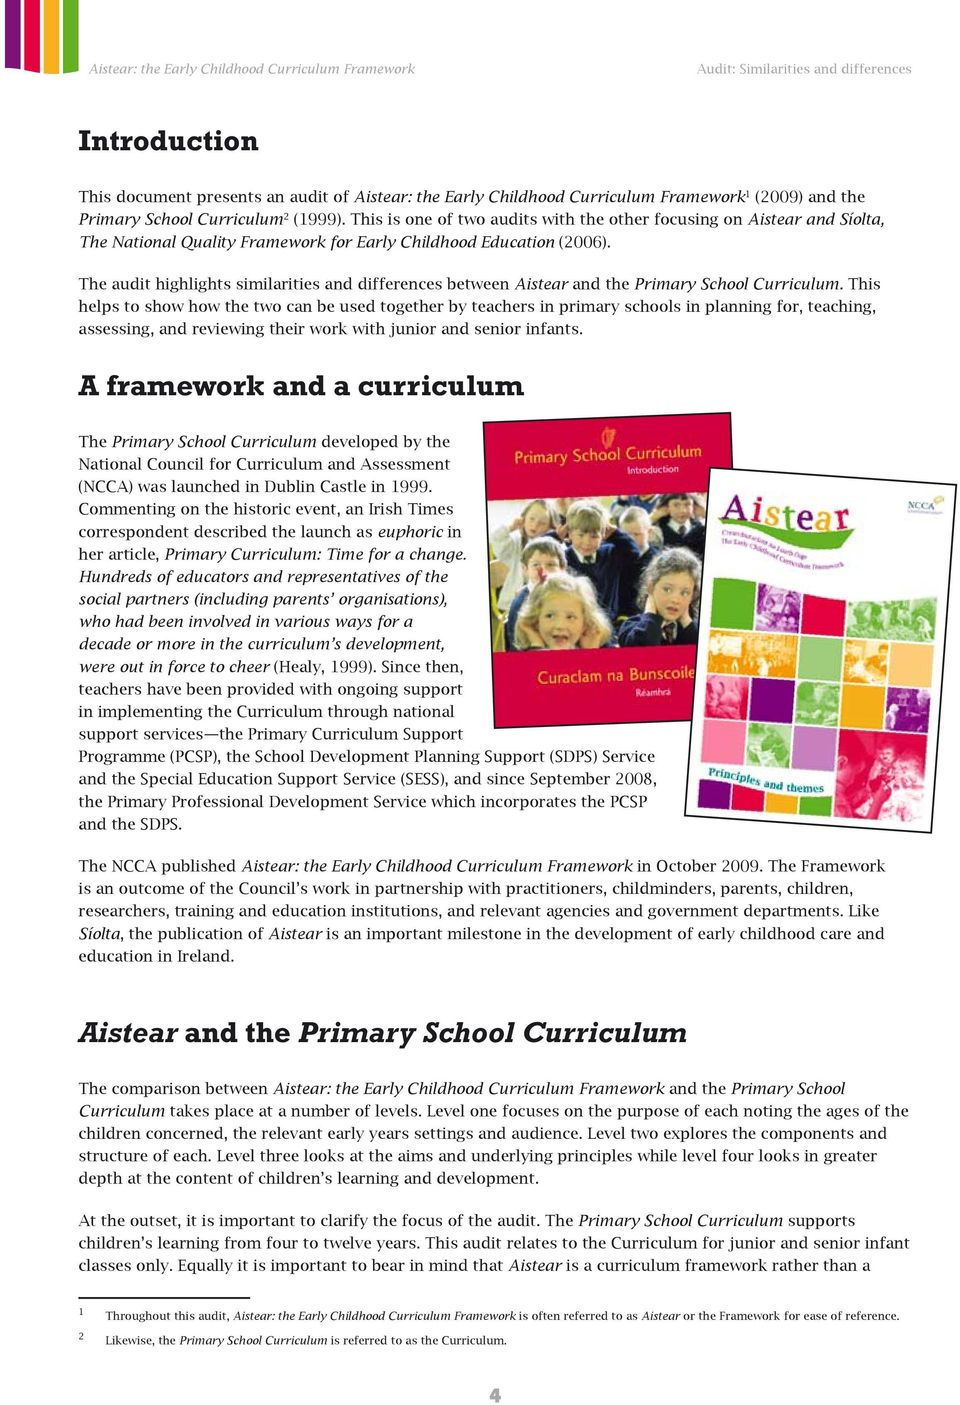 The audit highlights similarities and differences between Aistear and the Primary School Curriculum.